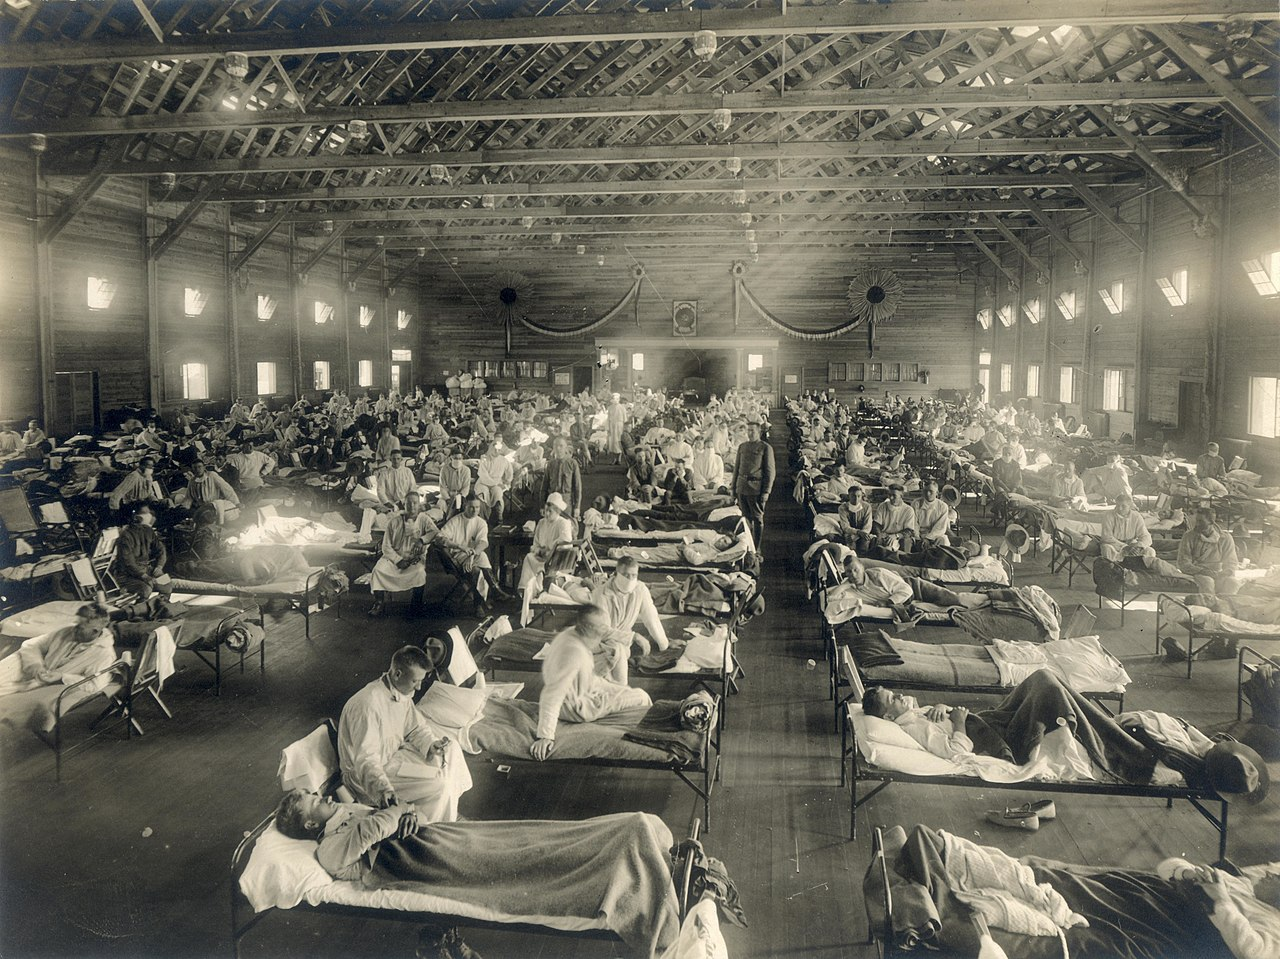 Emergency hospital during Spanish Influenza epidemic, Camp Funston, Kansas (1918-20)